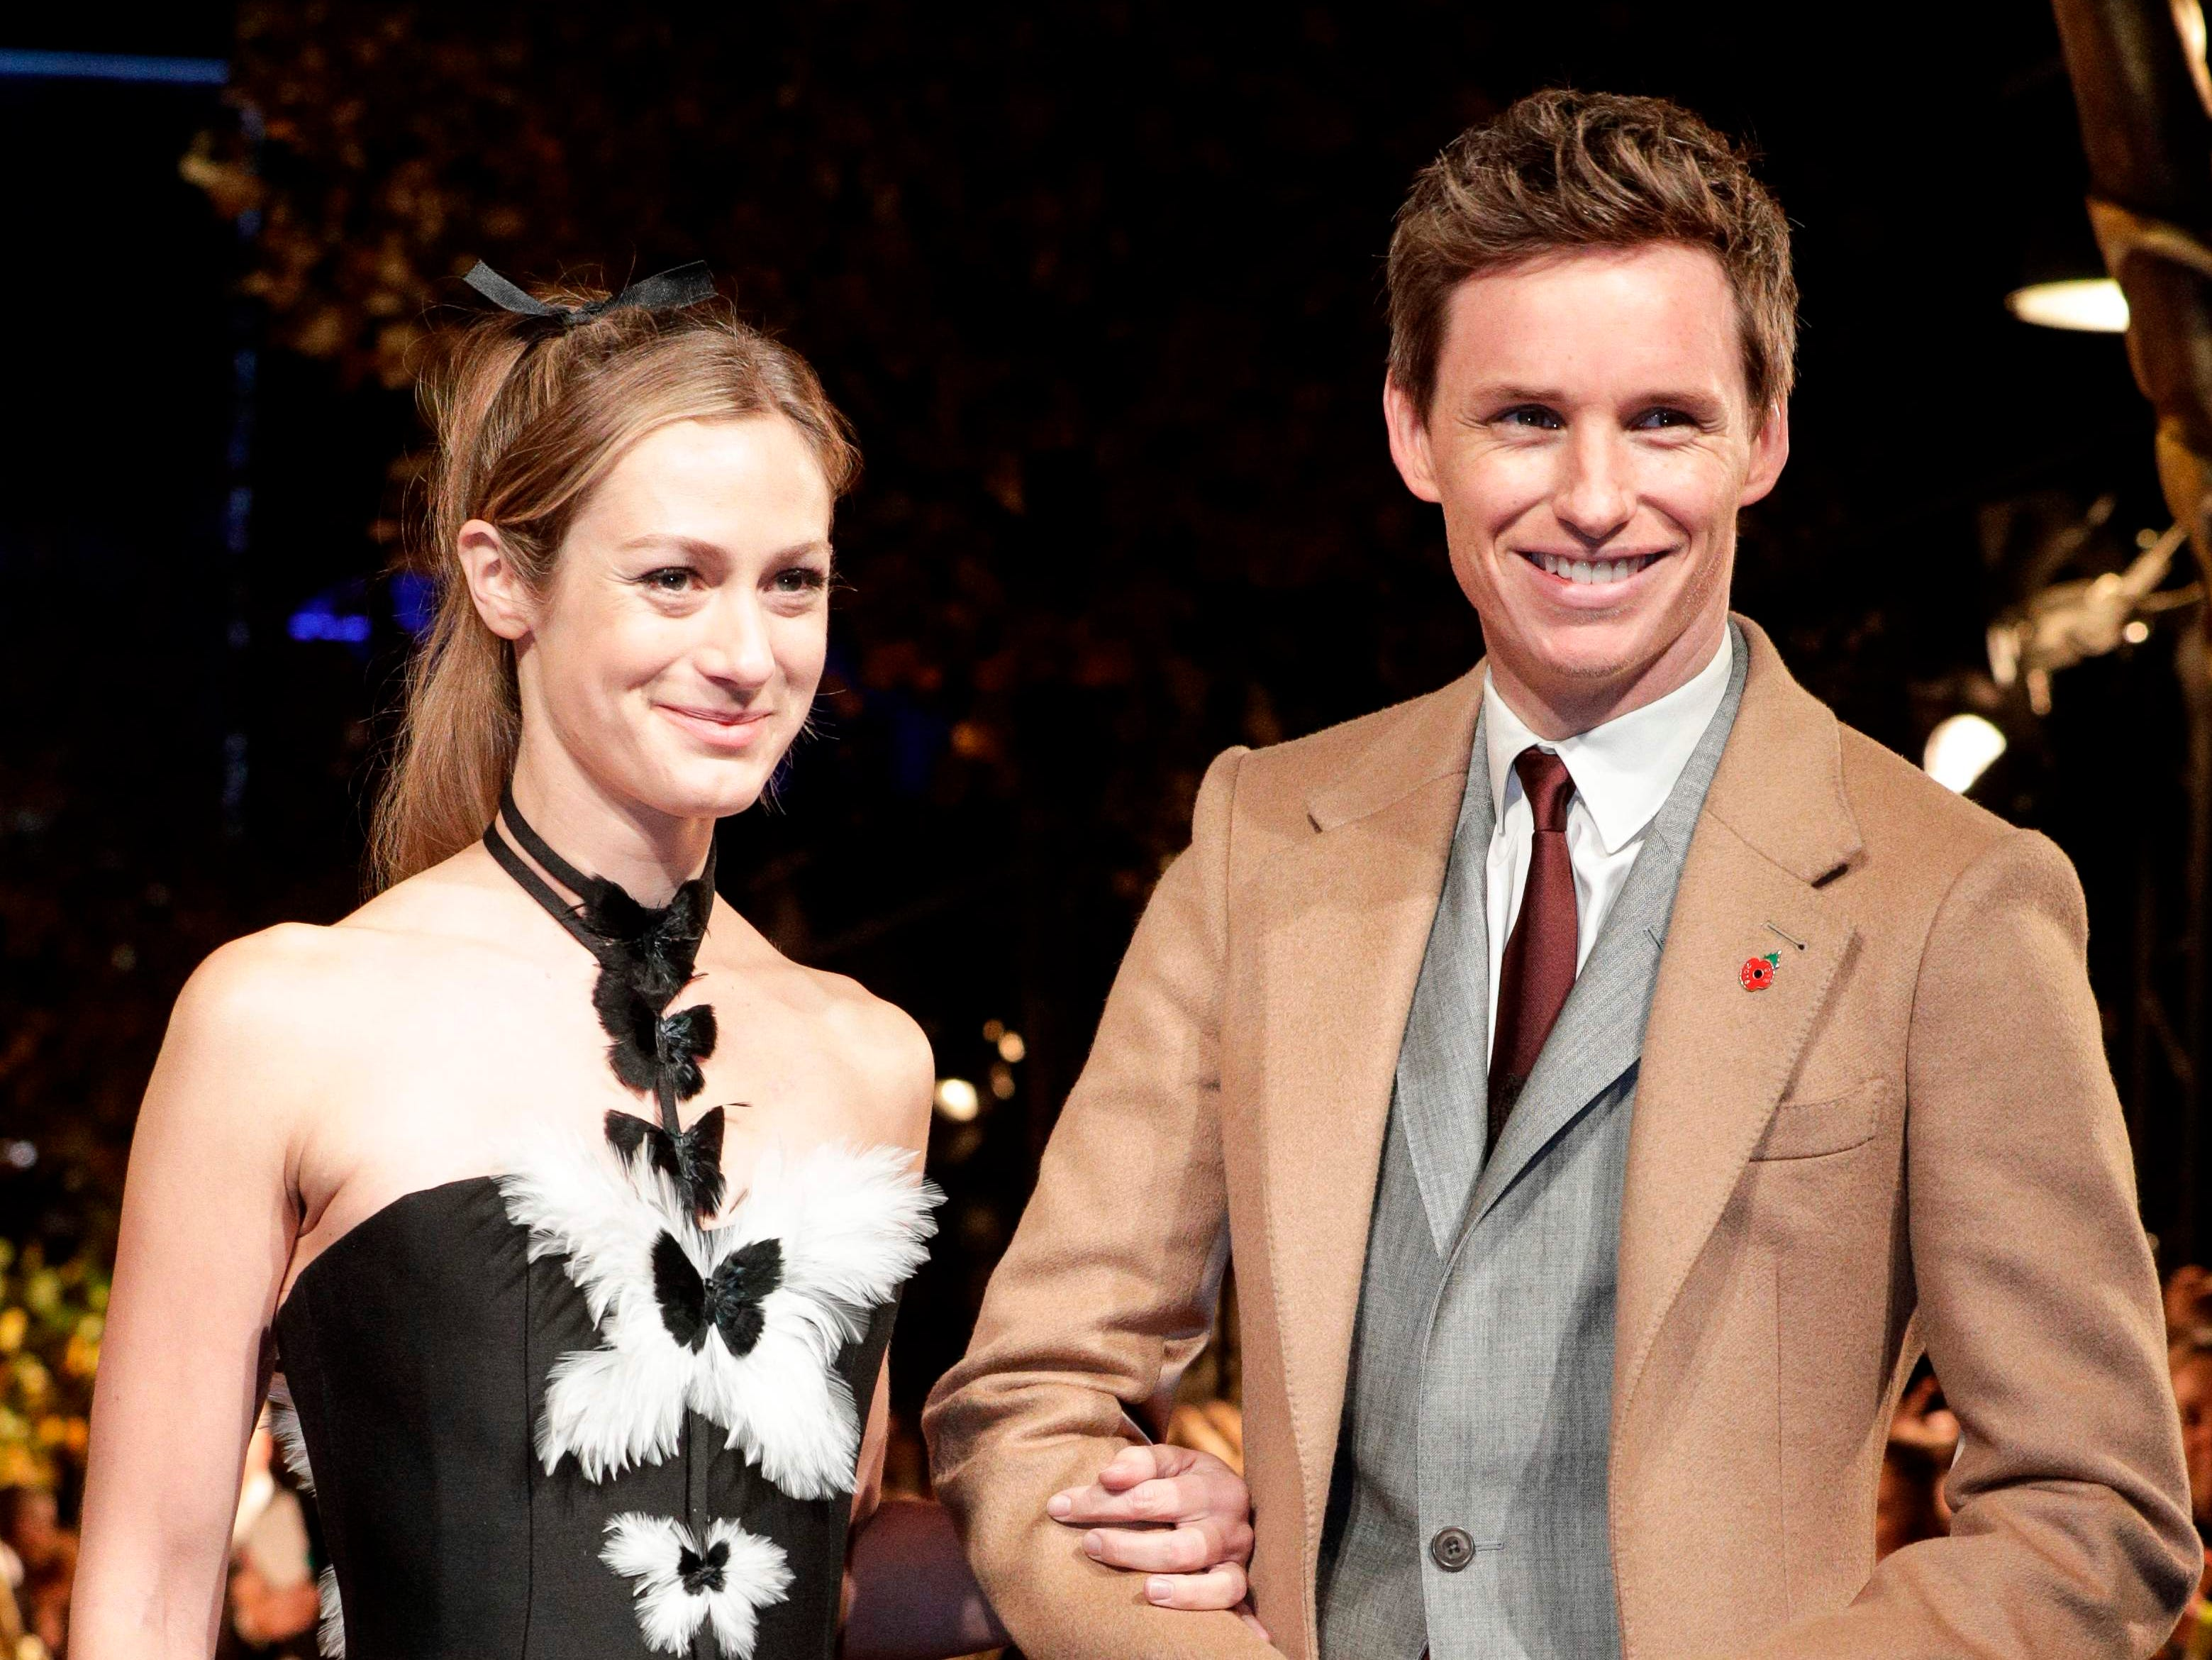 British actor Eddie Redmayne and his wife Hannah Bagshawe arrive for the premier of the fantasy film 'Fantastic Beasts: The Crimes of Grindelwald' in Paris on November 8, 2018. (Photo by Geoffroy VAN DER HASSELT / AFP)GEOFFROY VAN DER HASSELT/AFP/Getty Images ORIG FILE ID: AFP_1AO8SY